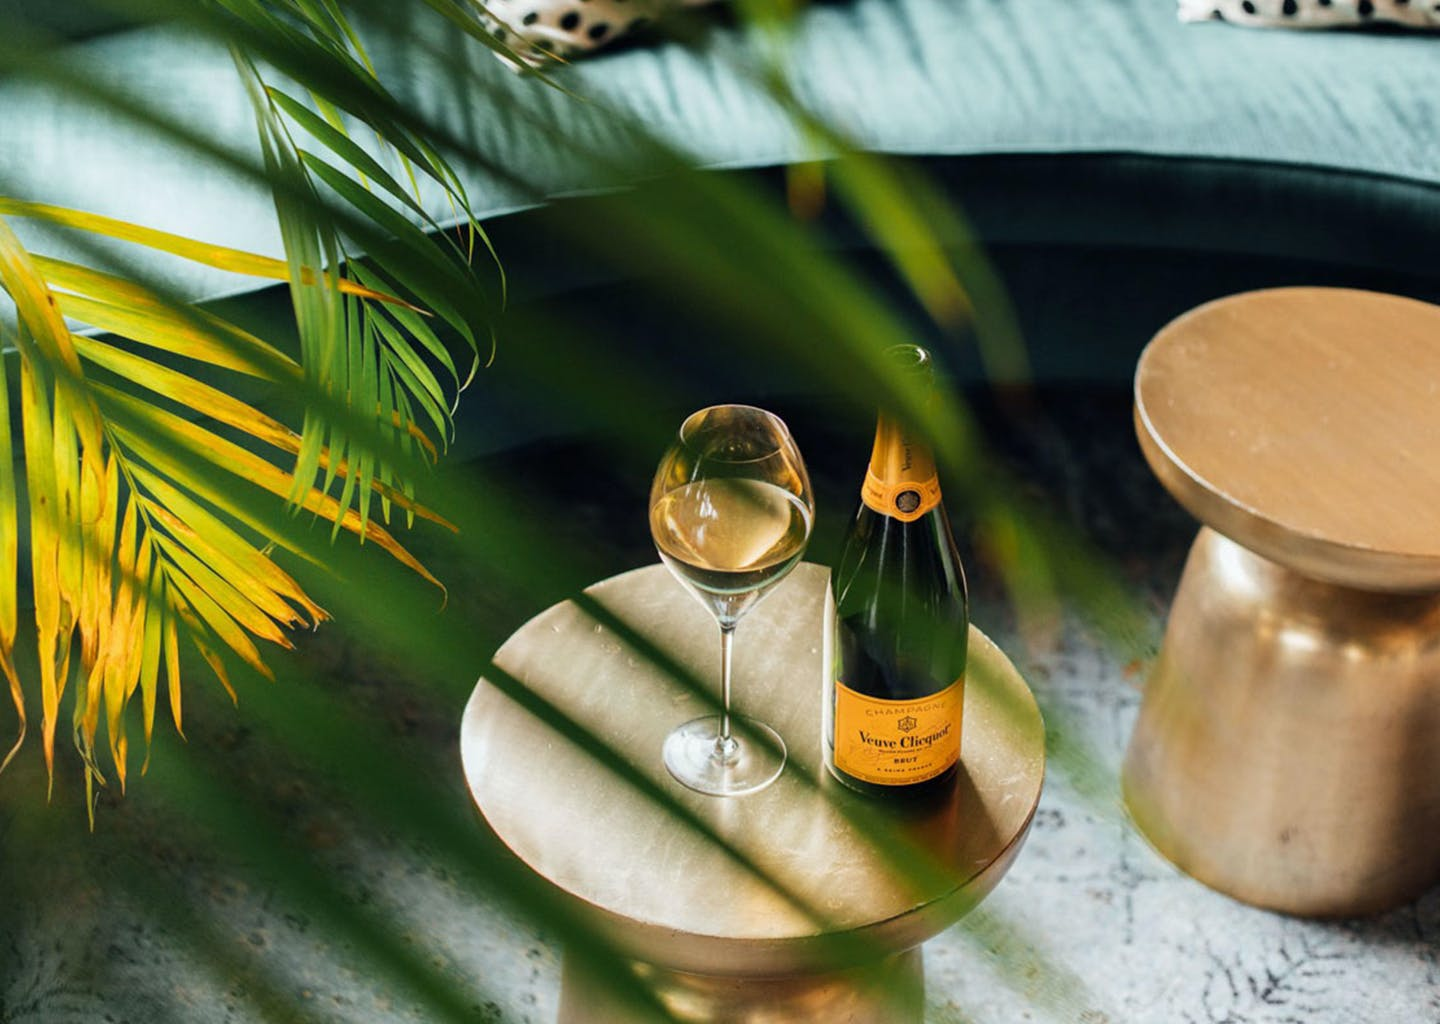 Image courtesy Veuve Clicquot